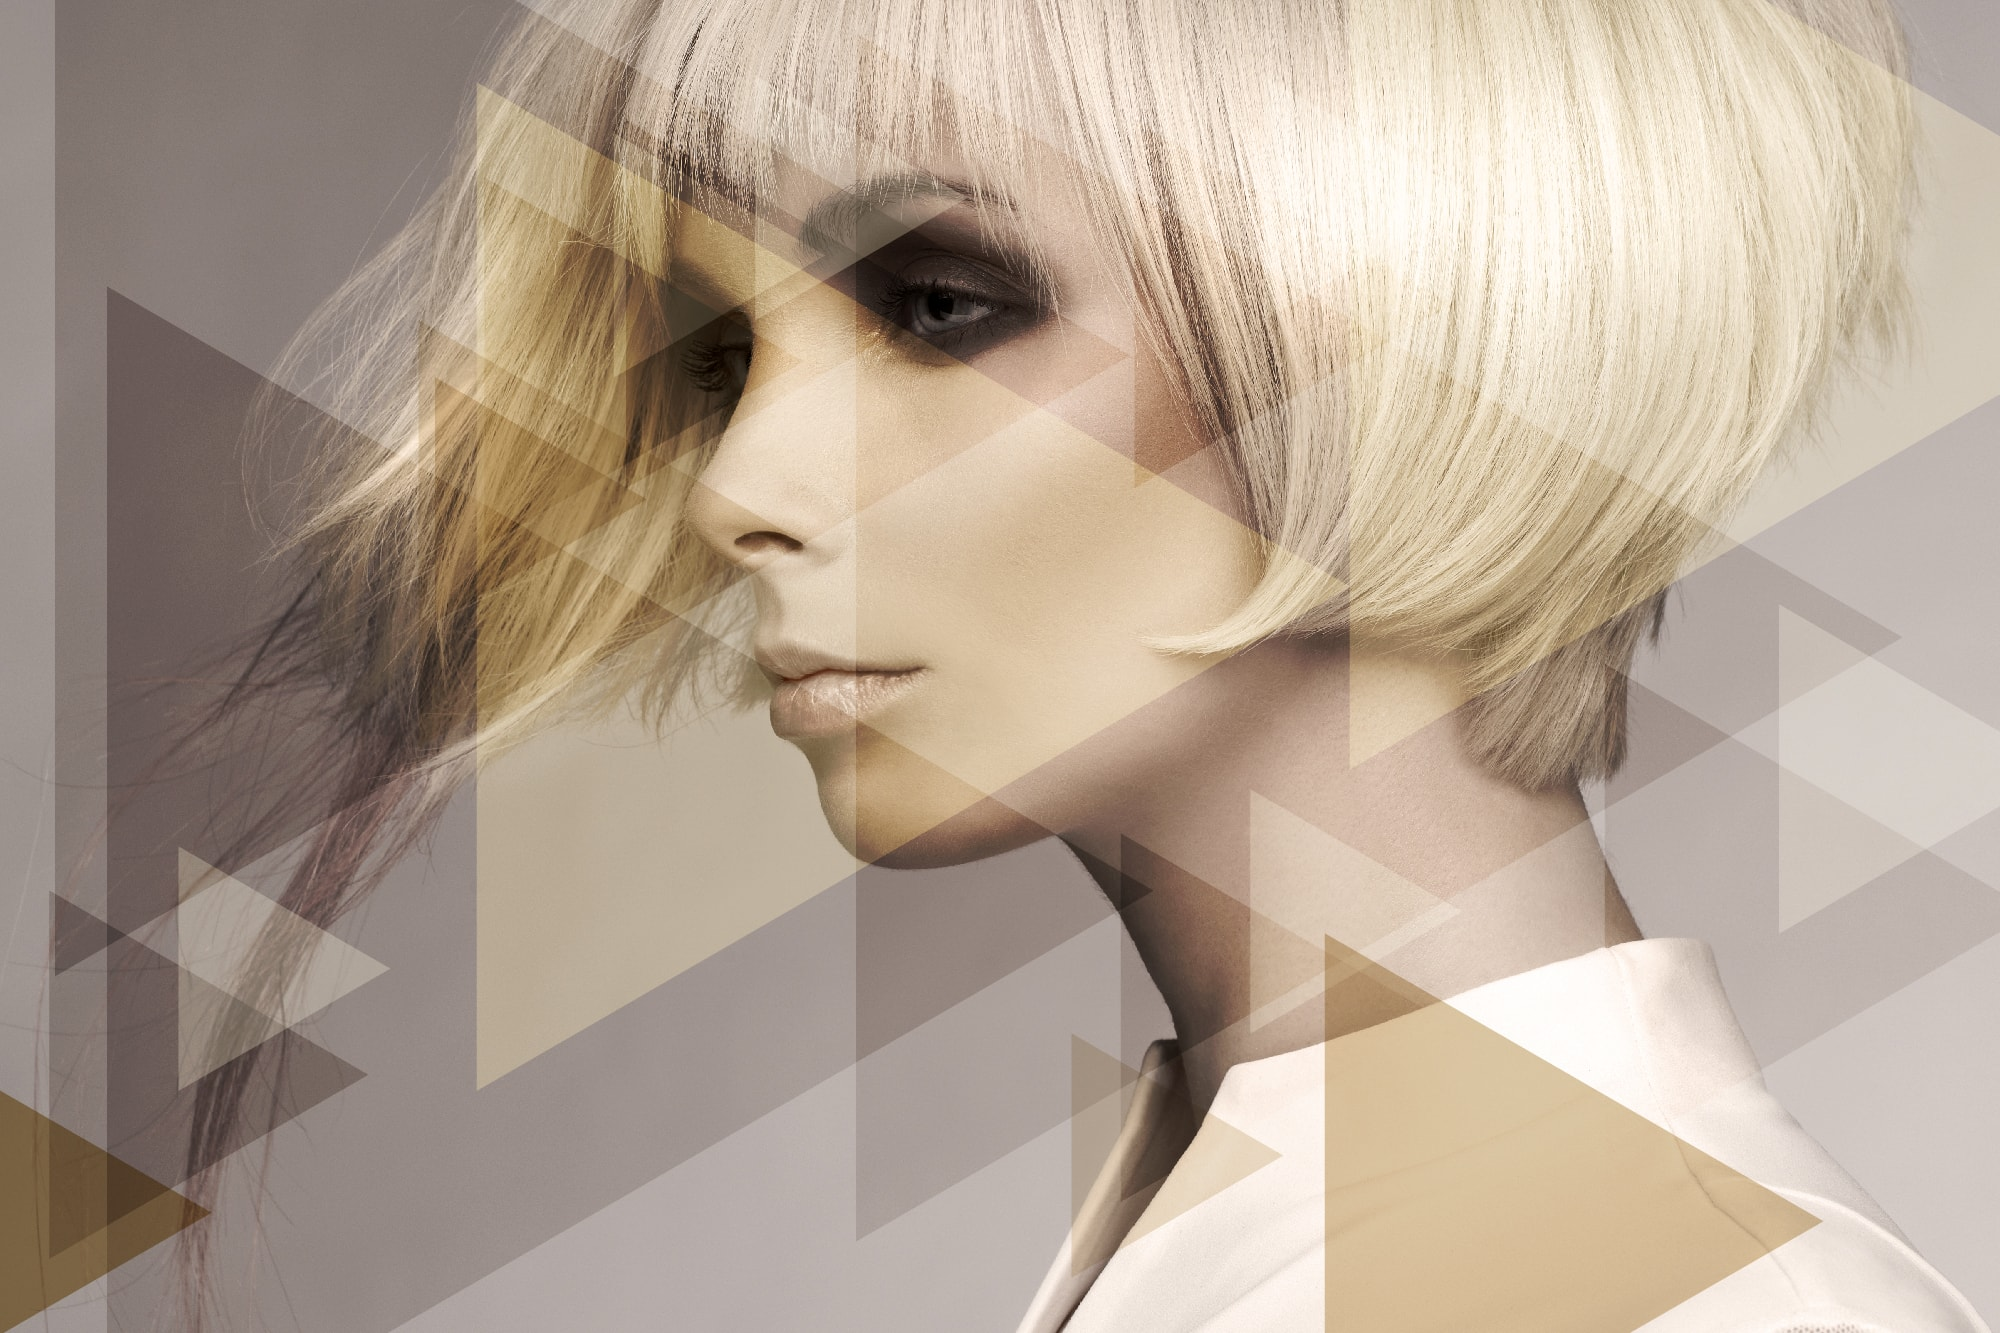 IMG - Services_Restyle Cut-min.jpg